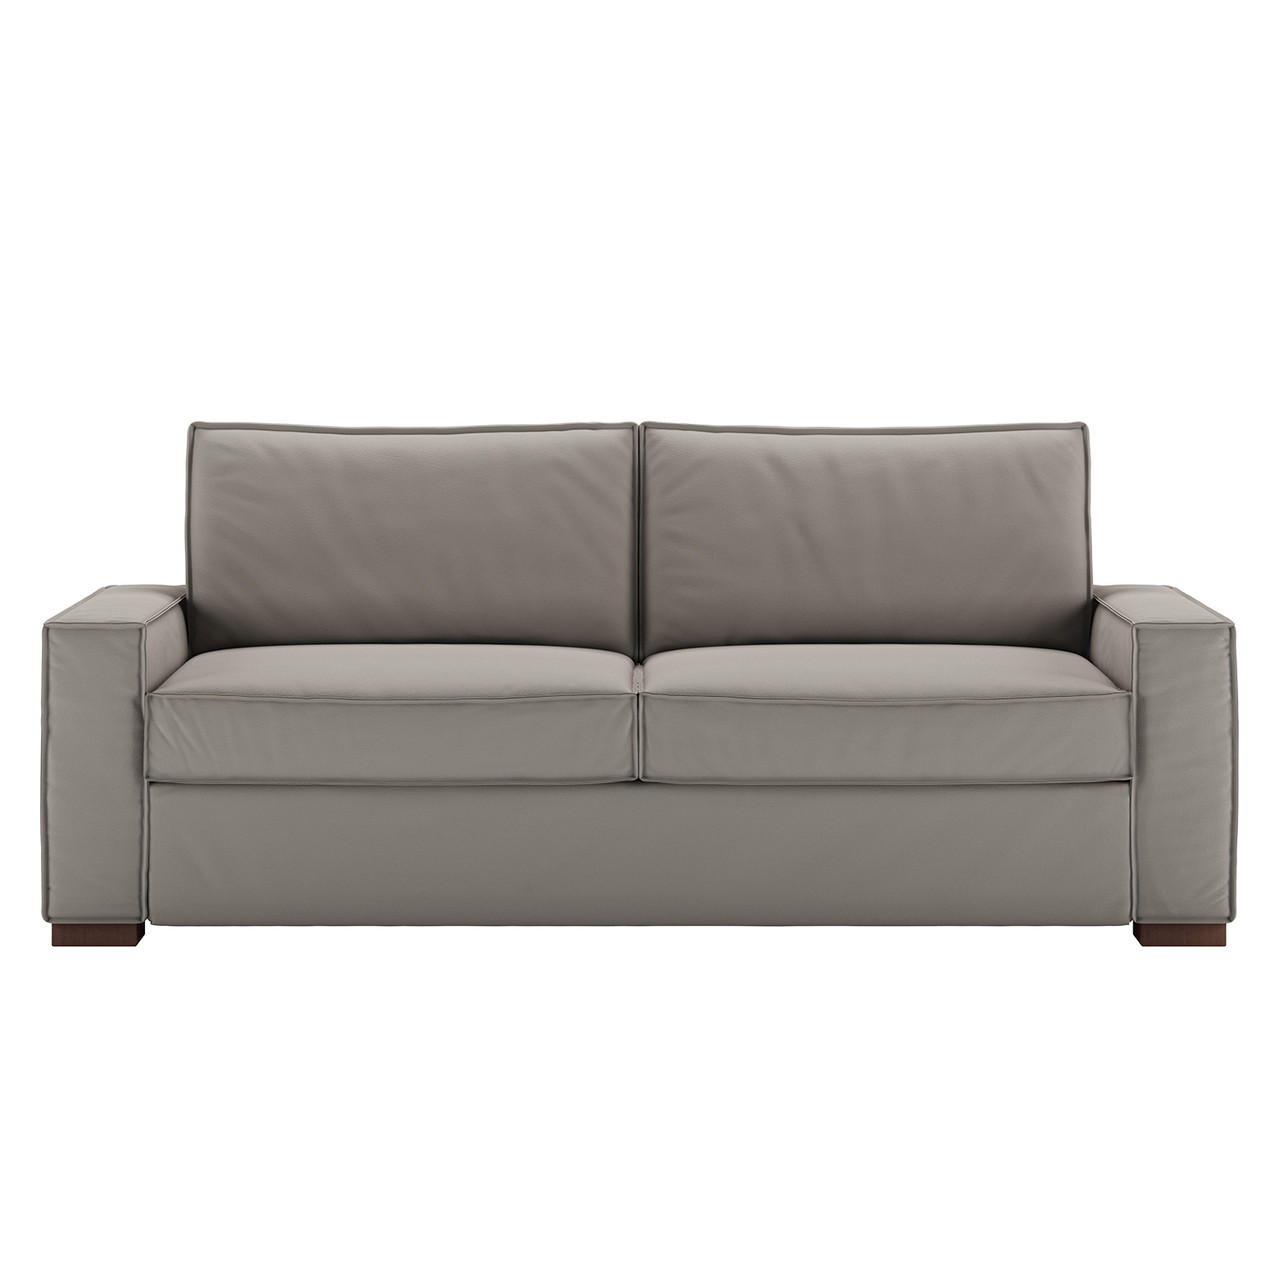 Queen Comfort Sleeper® in Bali Gravel Leather with Acorn Finish Legs